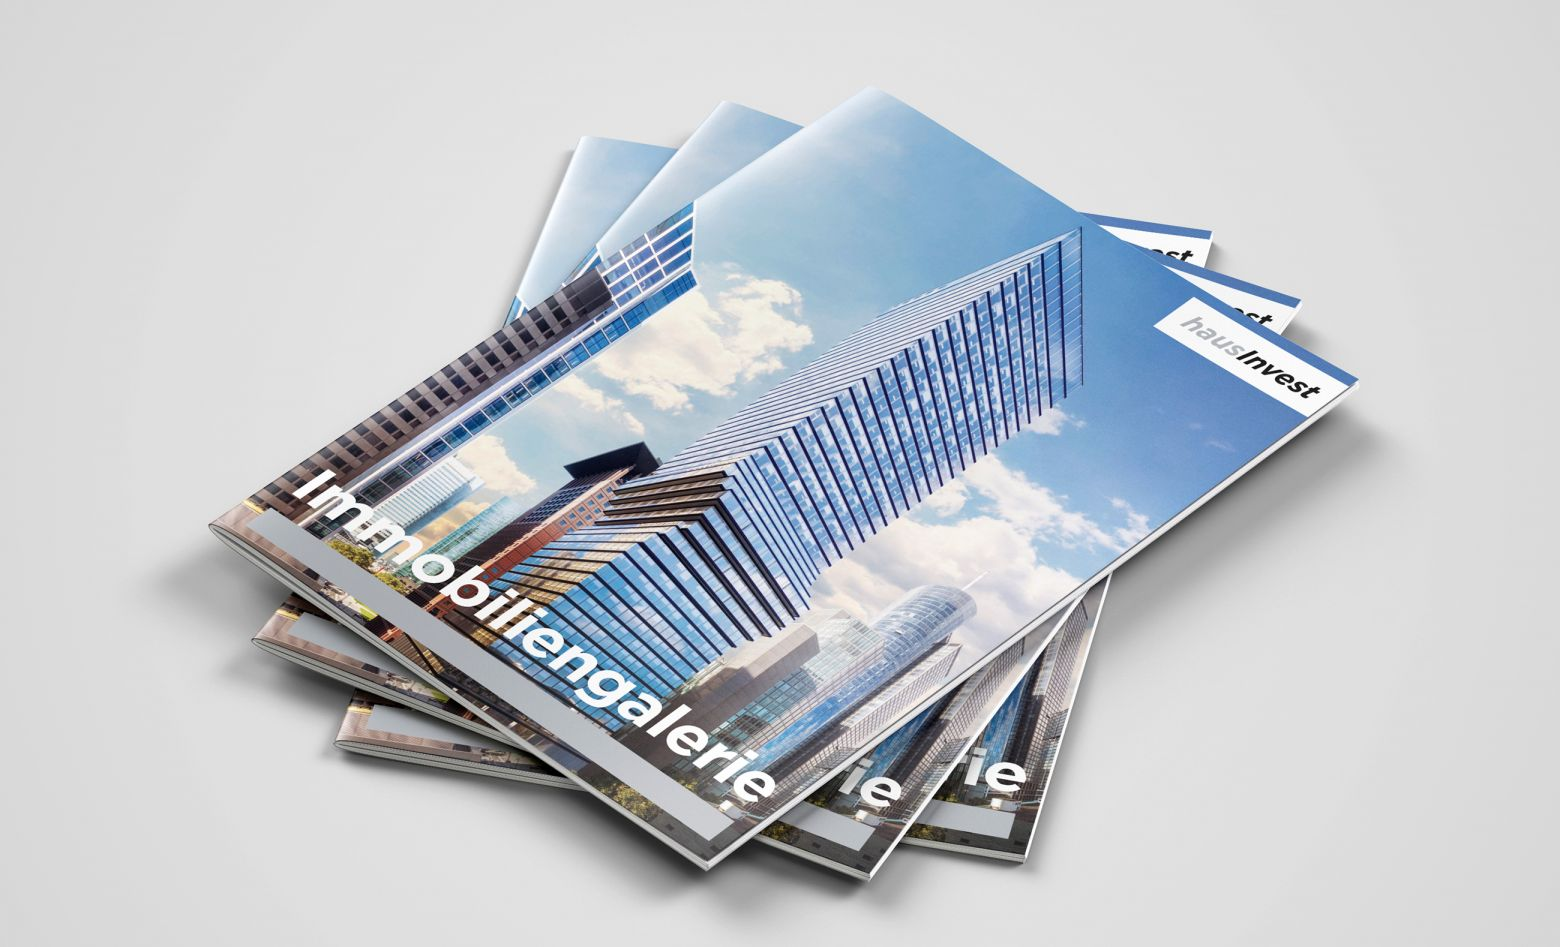 hausinvest_Immobiliengalerie Cover